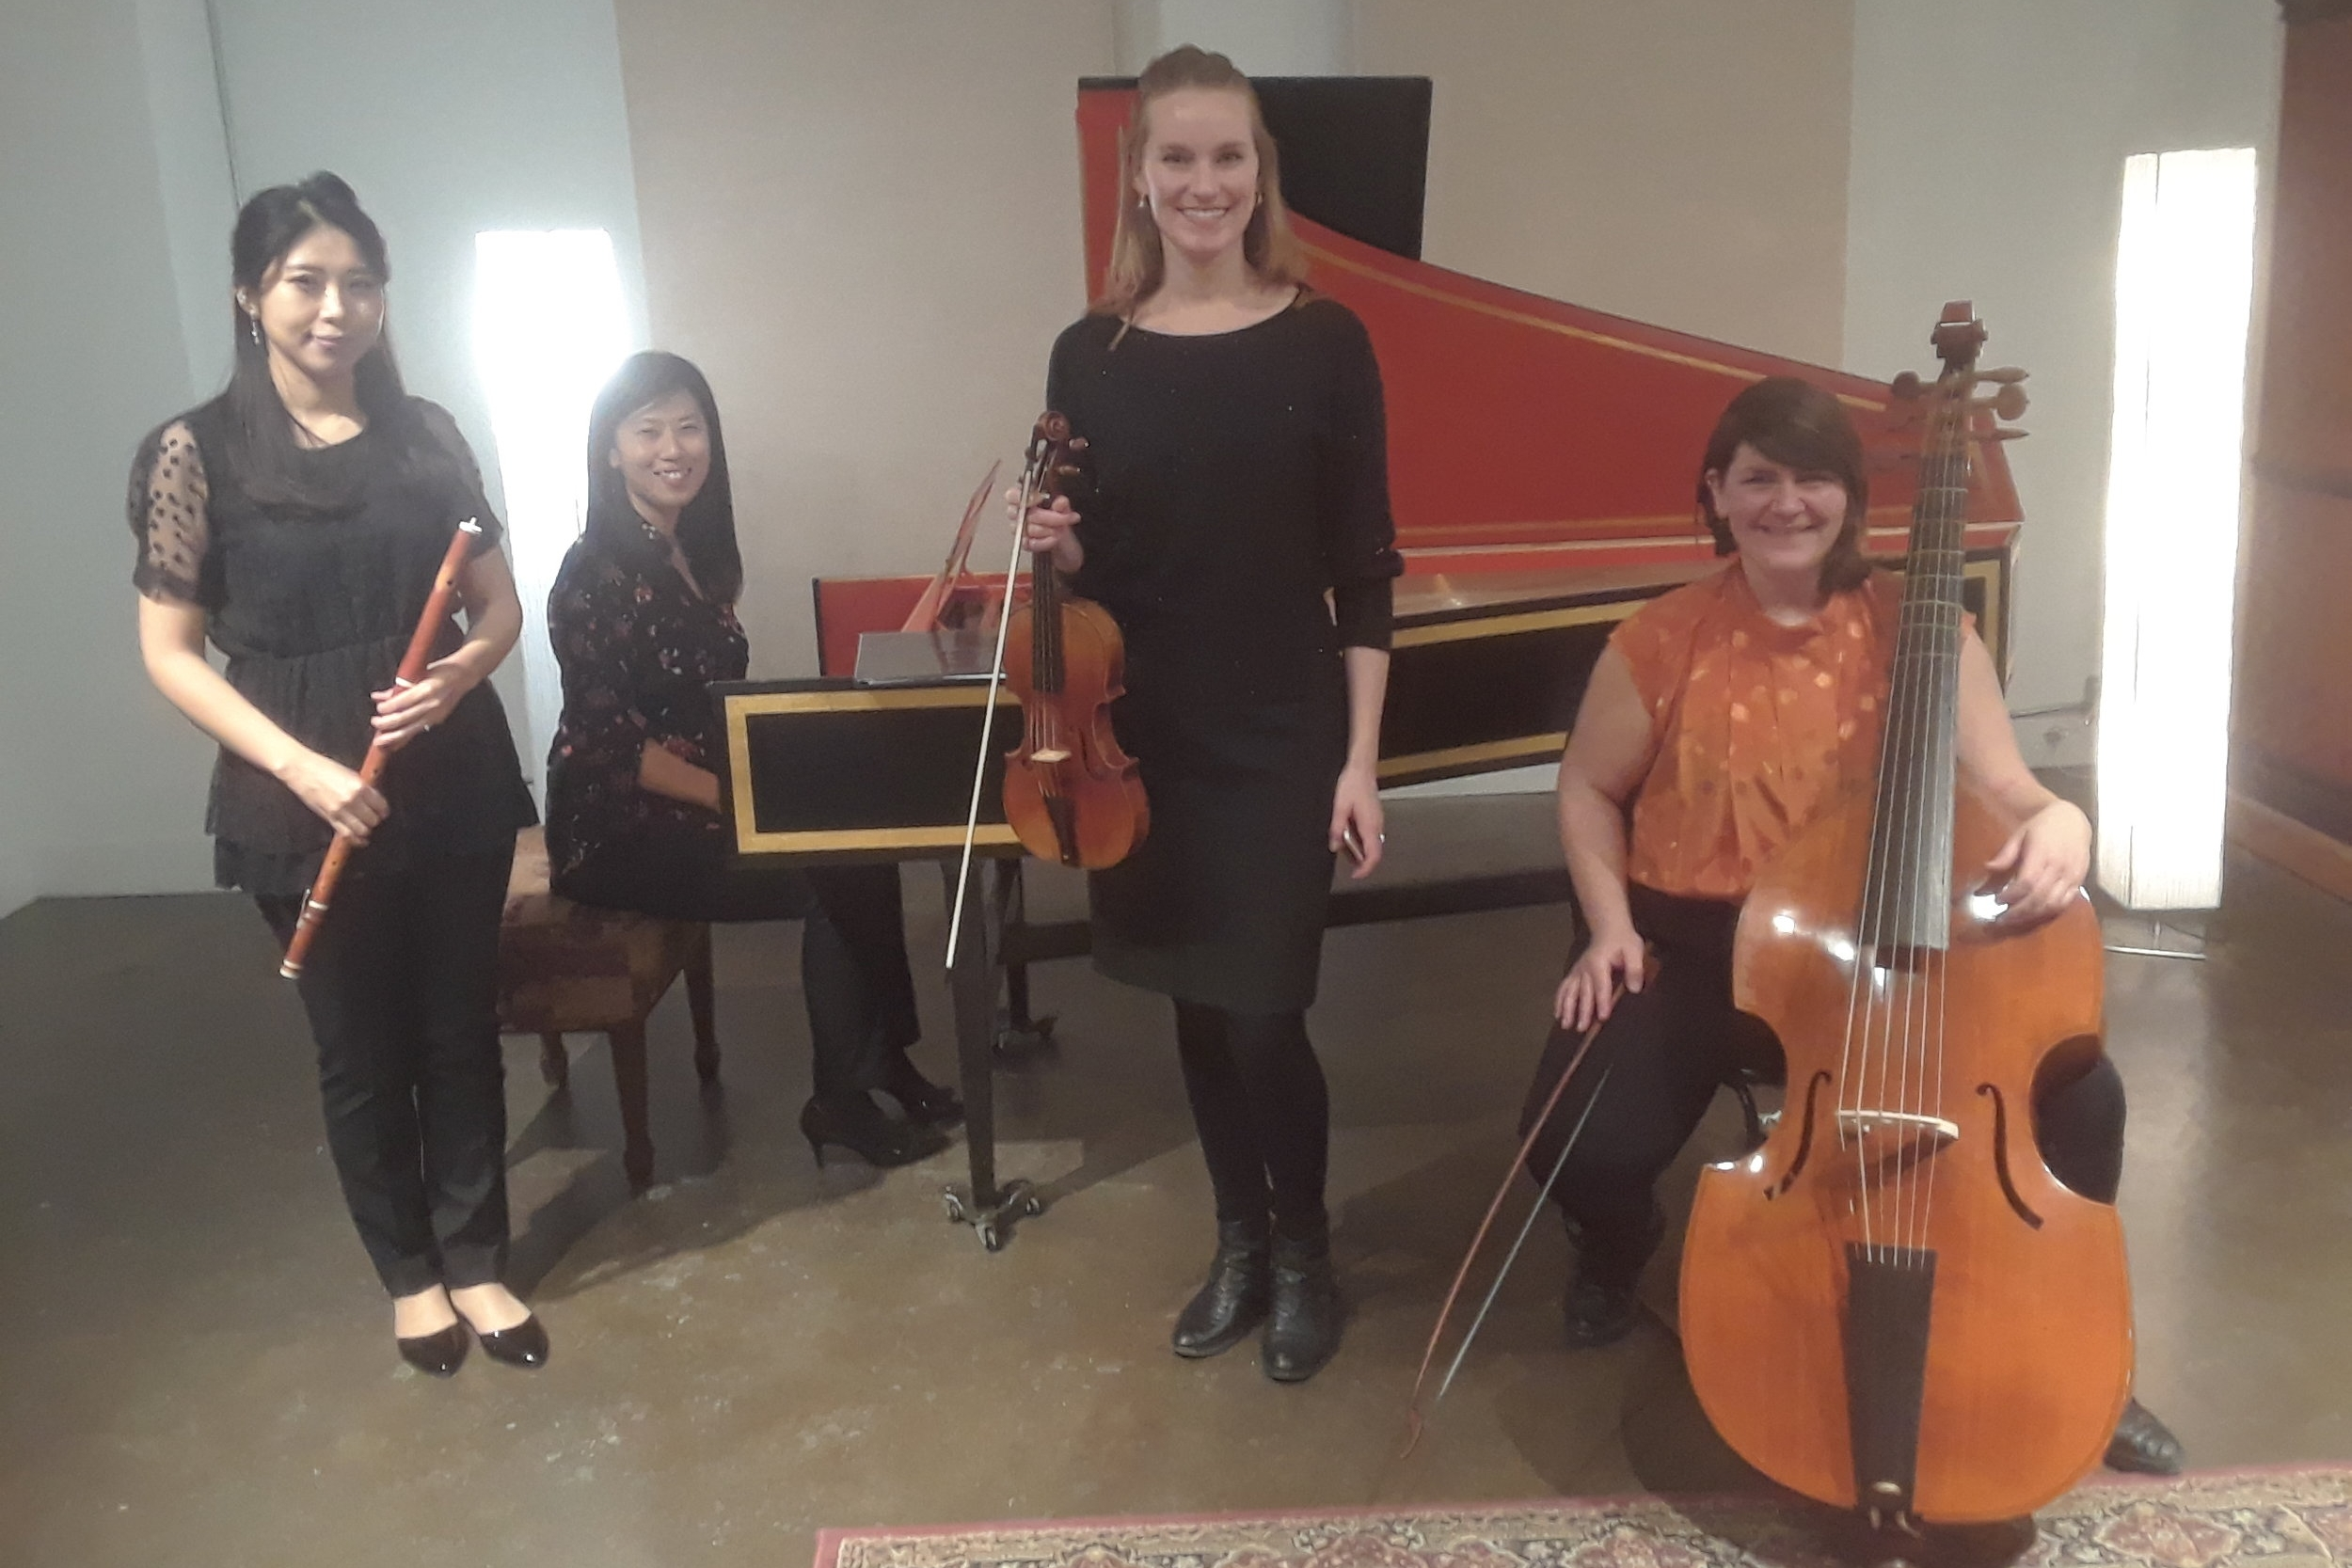 An Elegant Dialogue: Basso Continuo & Strings